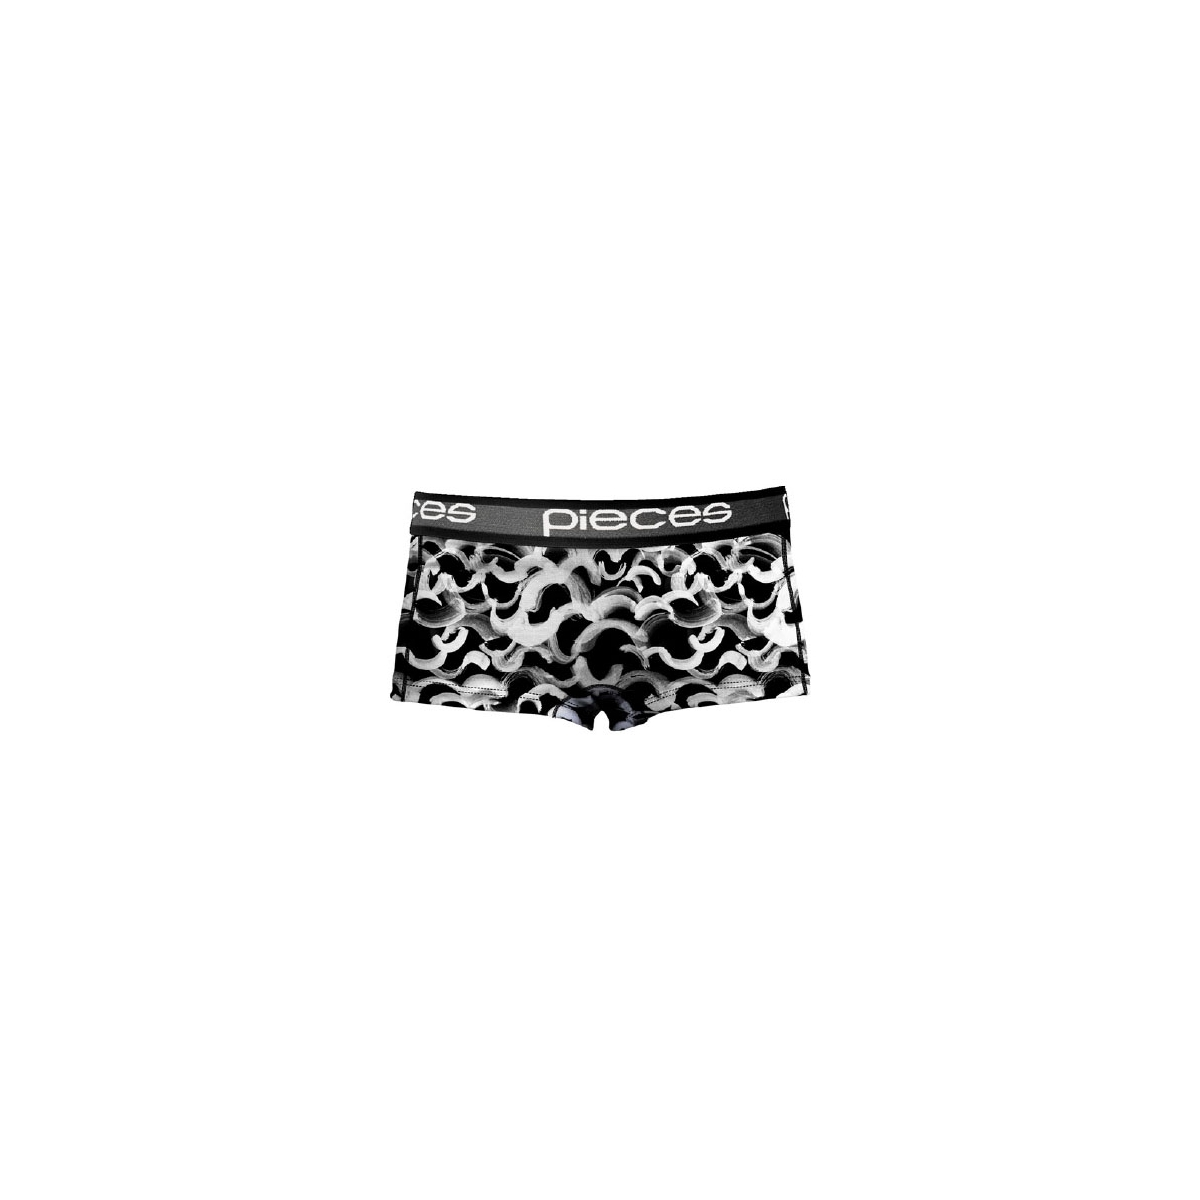 pclogo lady boxers 14-186 blc&wh 17079675 pieces ondergoed black/comb a